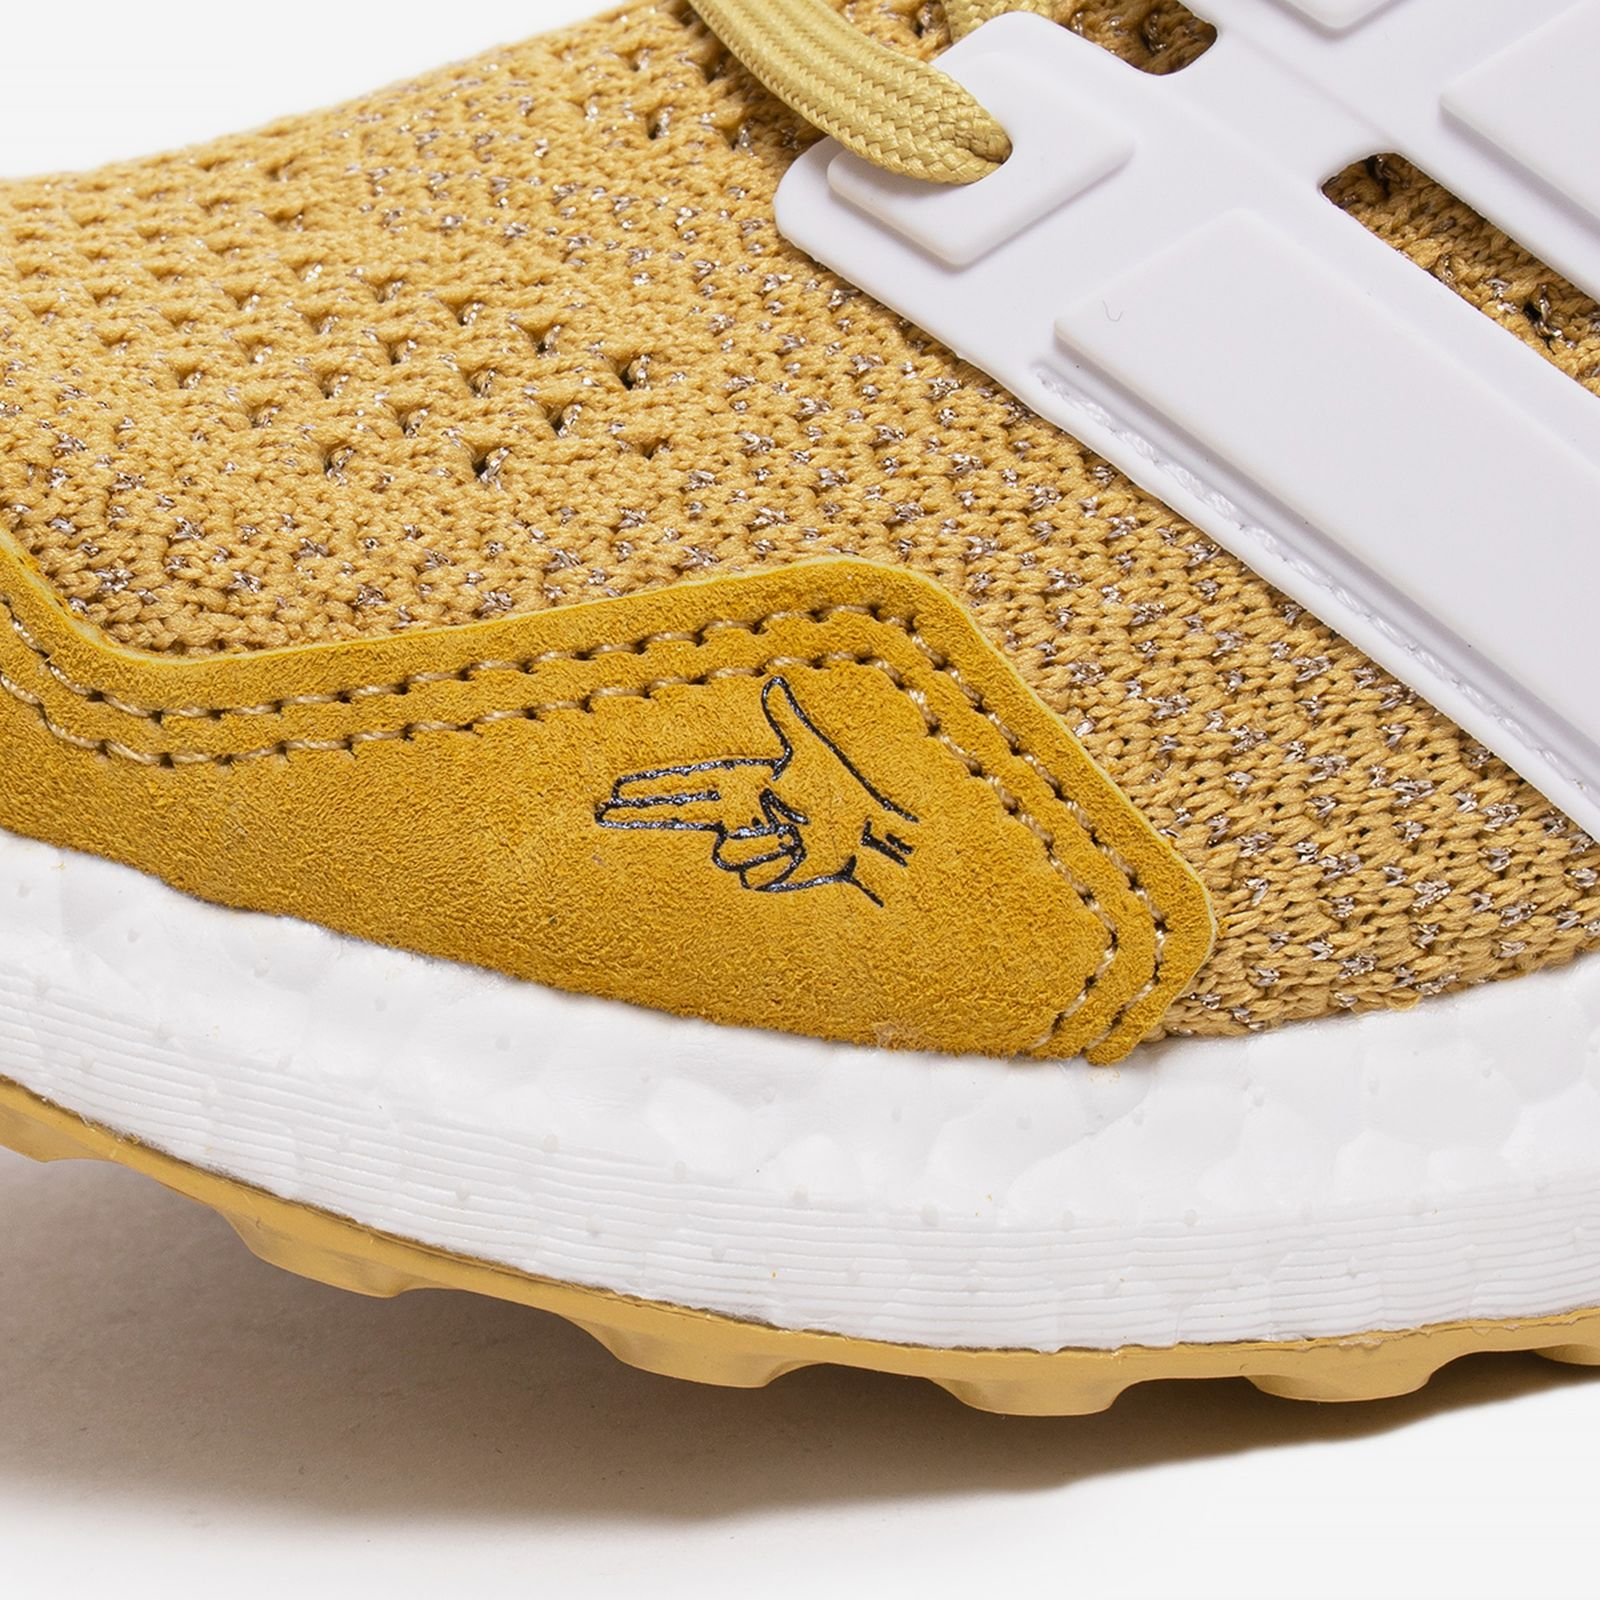 extra-butter-adidas-ultraboost-gold-jacket-release-date-price-1-05